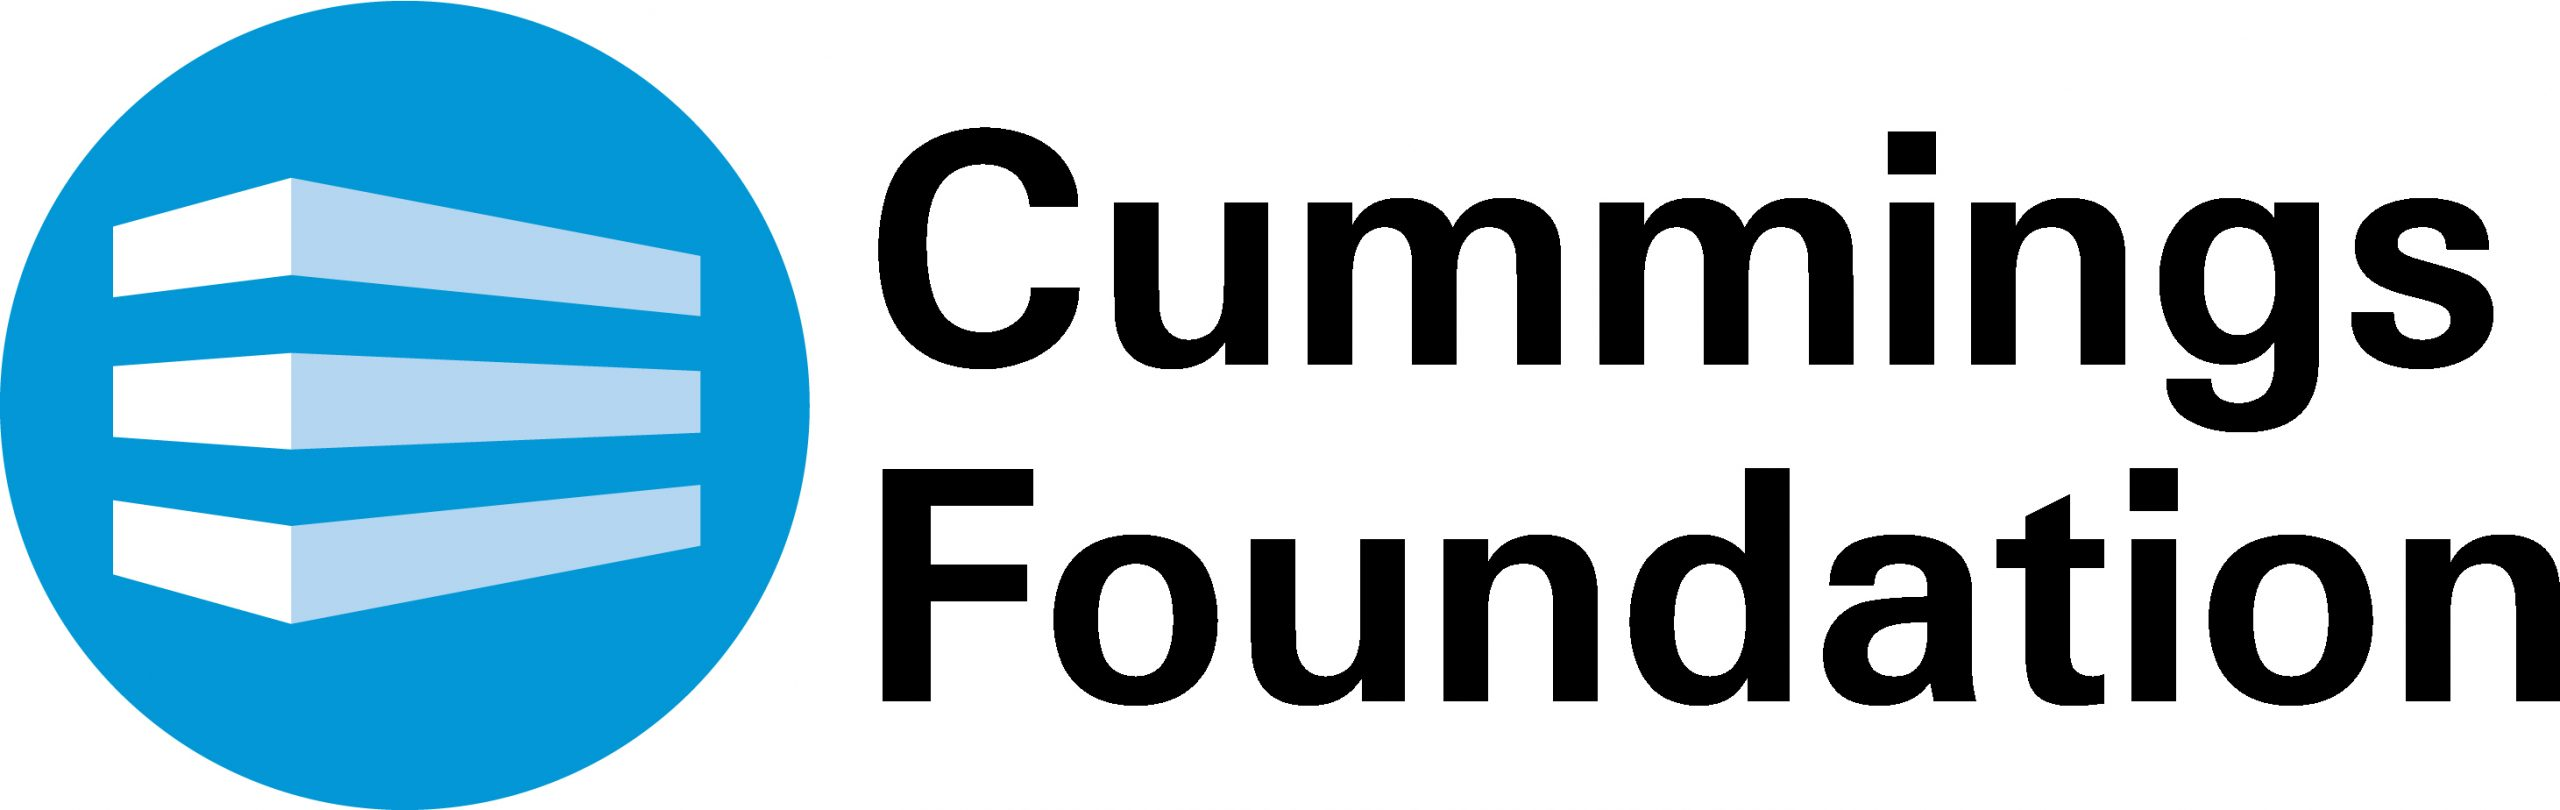 Cummings Foundation Highlight